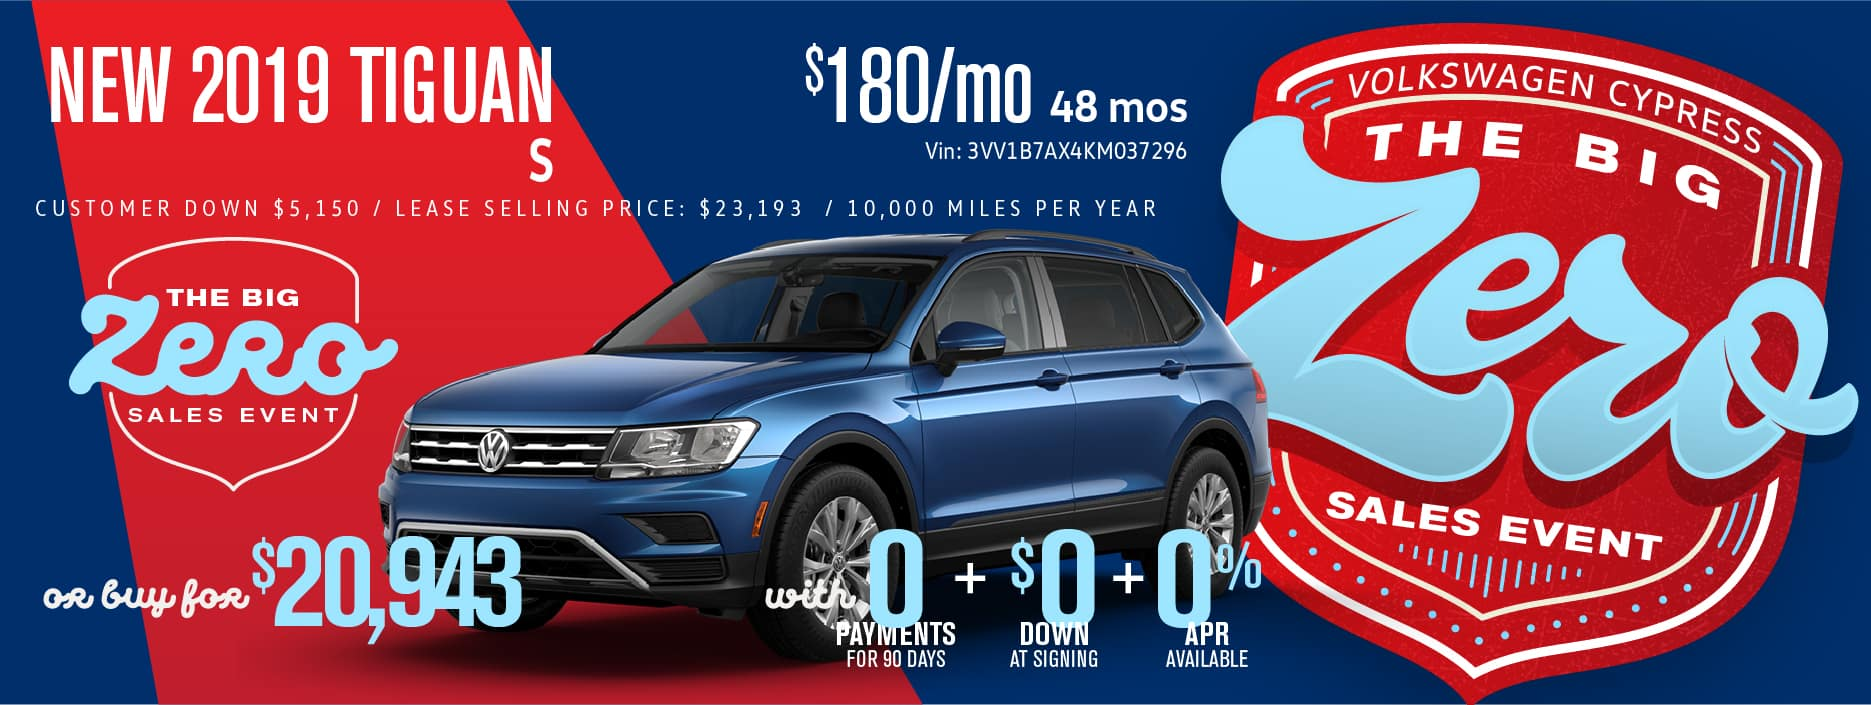 Get the Tiguan for Zero Down and 0 payments 90 days!